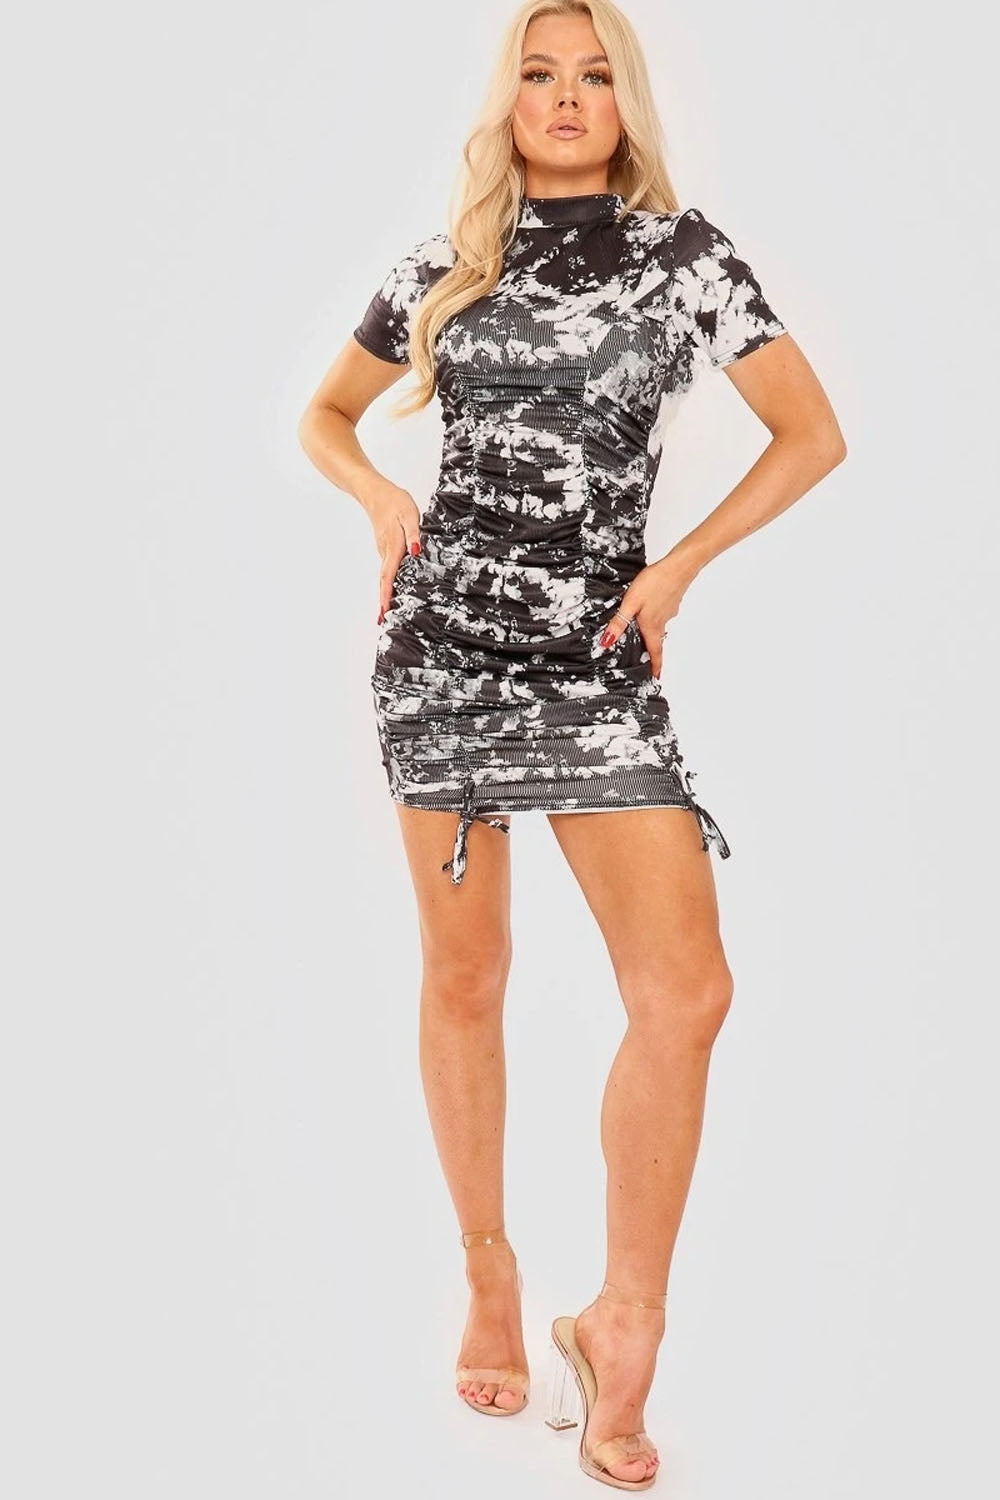 Black Grey Tie Dye Ruched Dress - Lasha